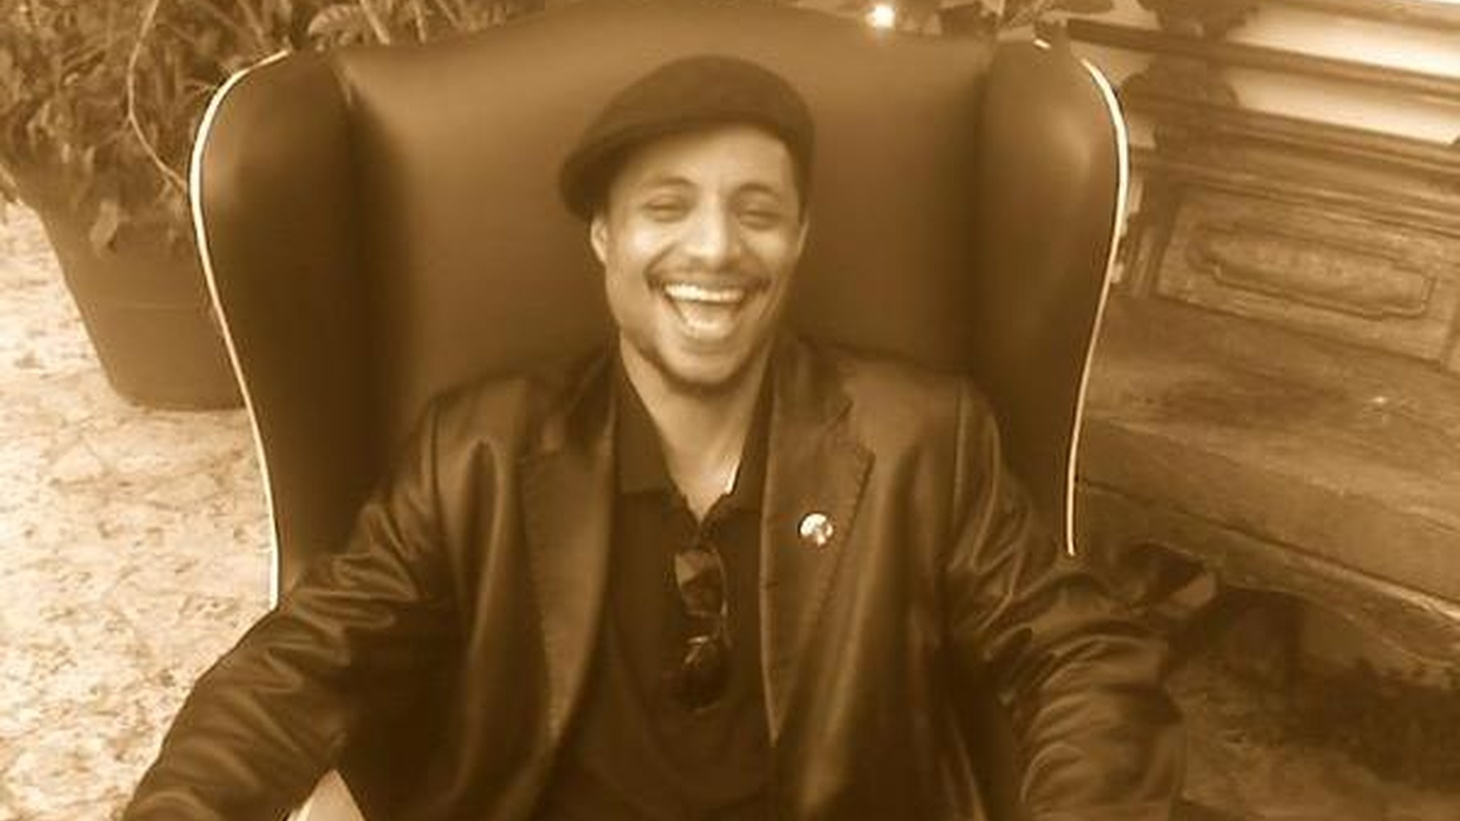 """Since his international 2008 debut, Jose James has been dazzling audiences around the world with his mellifluous baritone stylings. His romantic sound recalls classic Marvin Gaye. Today's Top Tune is the title track from the forthcoming release """"Black Magic."""""""